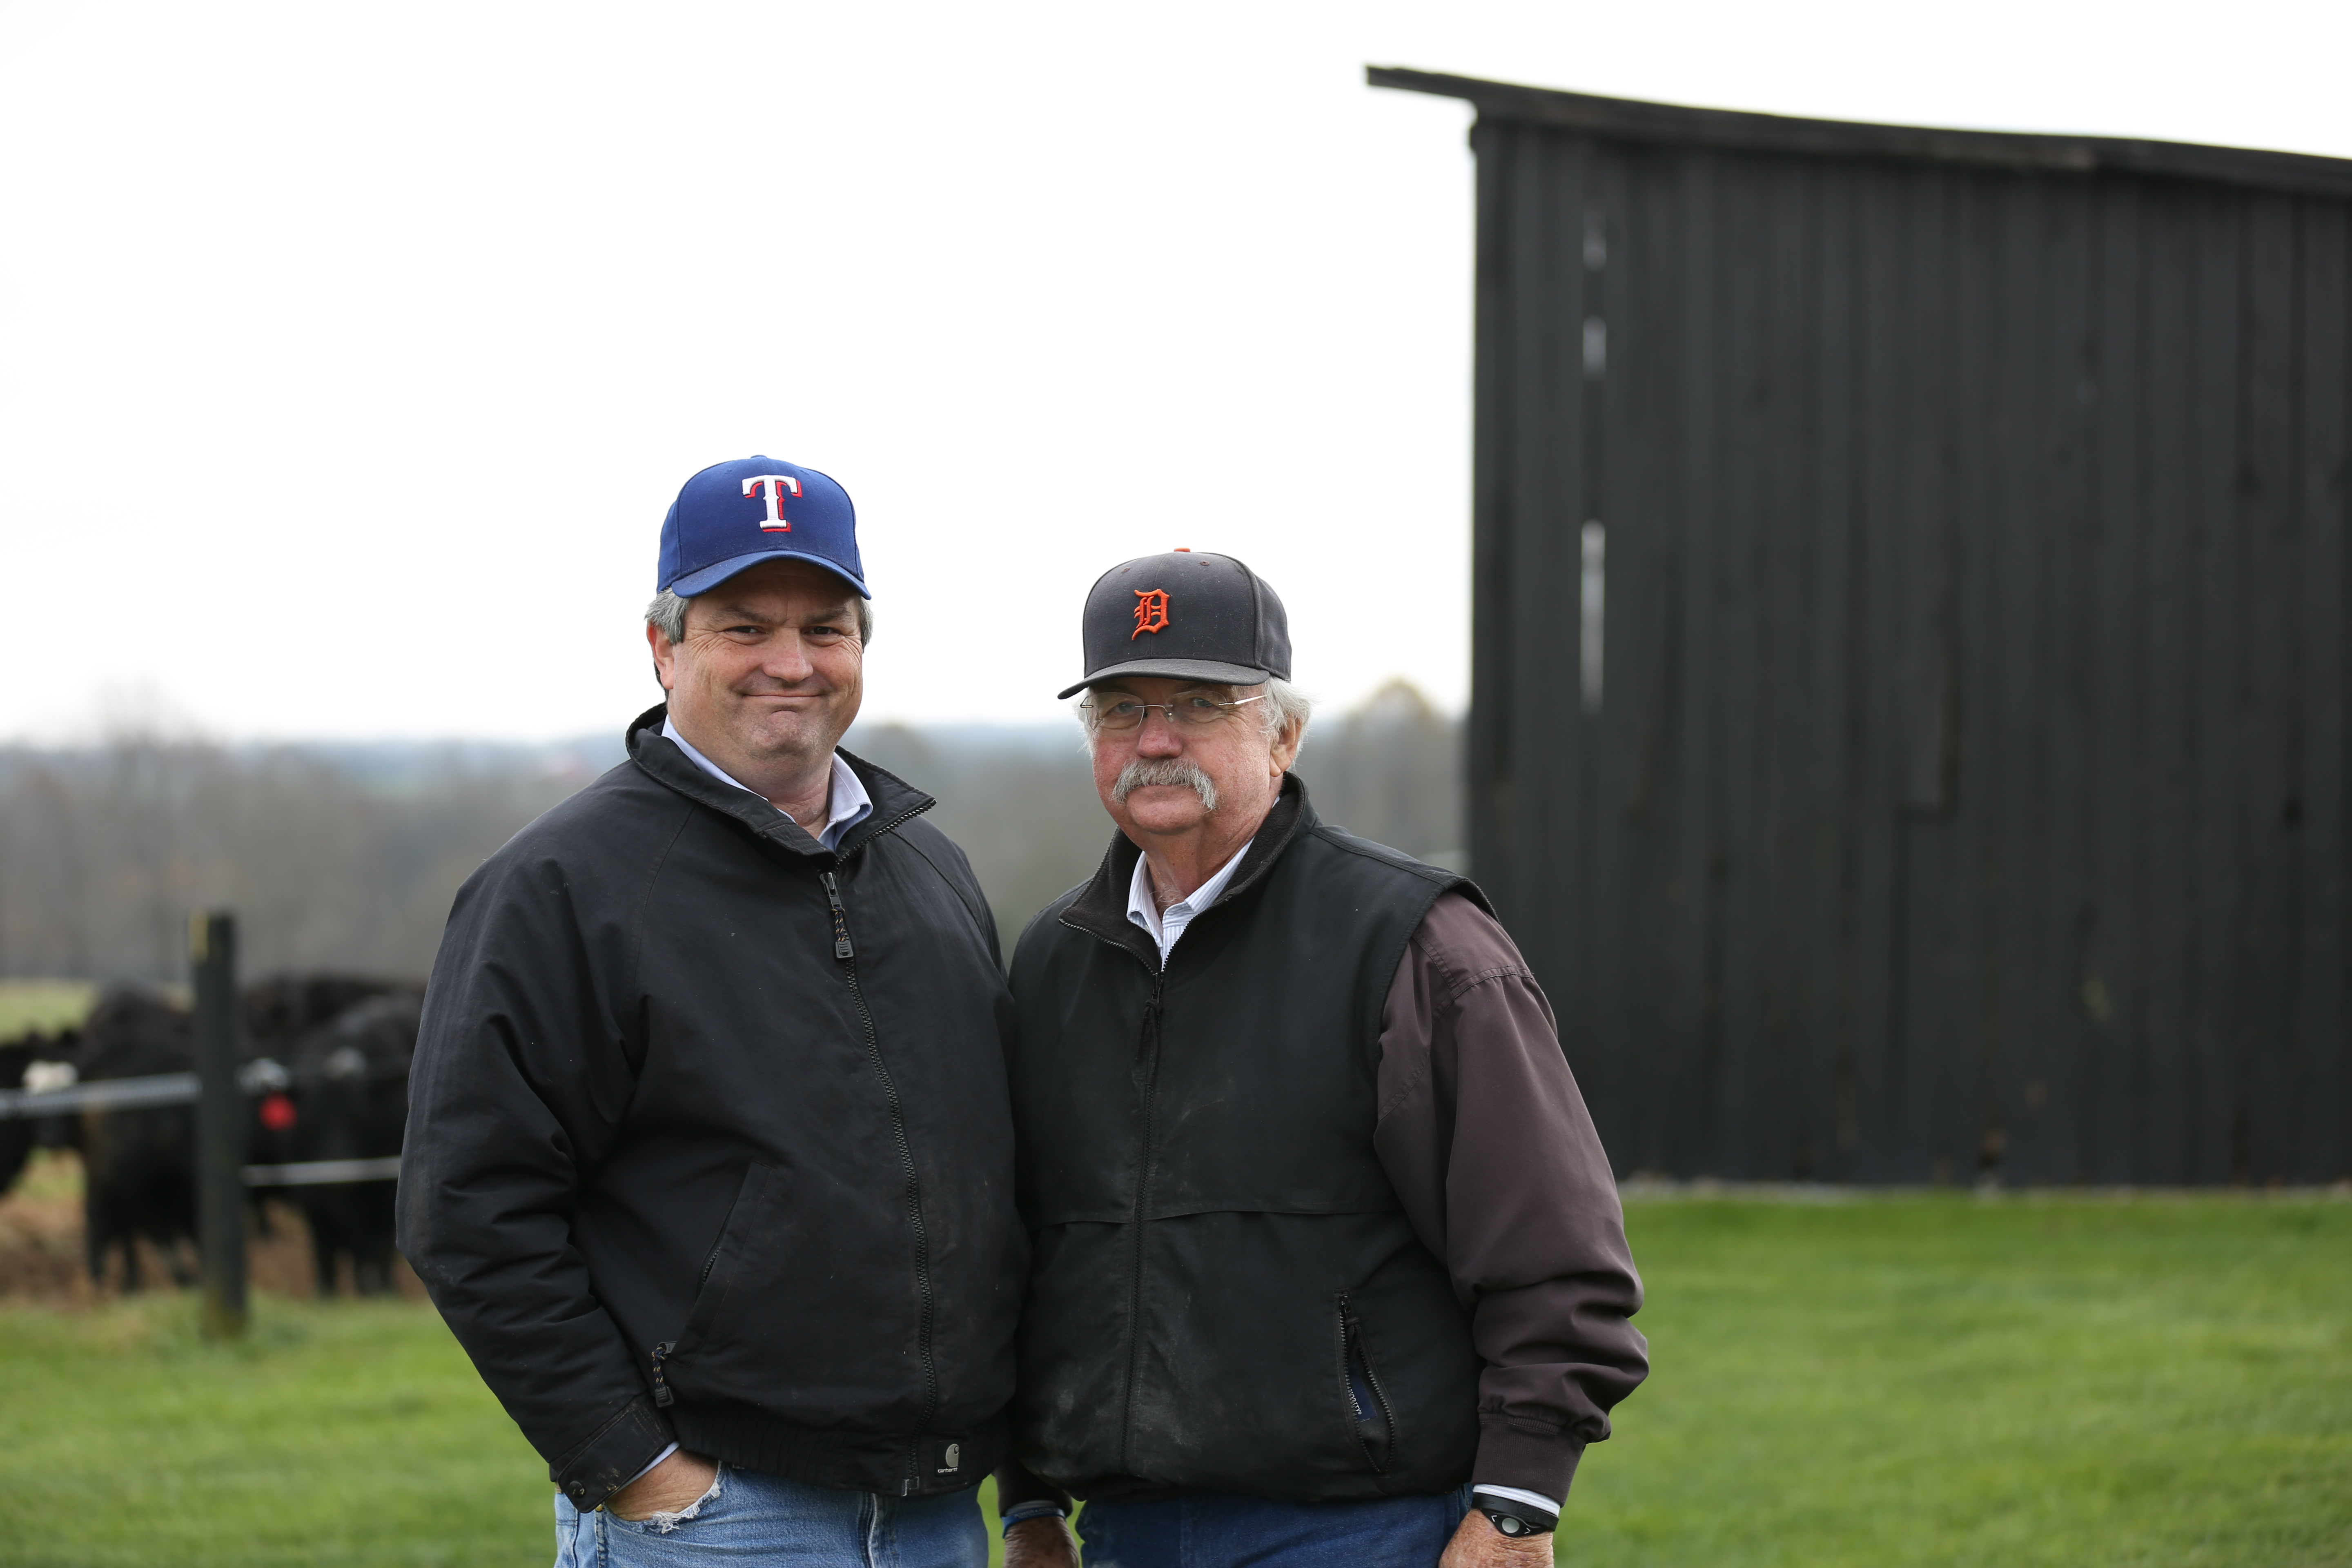 Scott (left) and his father Billy (right) have always enjoyed their commercial Angus herd. However, it wasn't until they both retired from careers as agriculture teachers and FFA advisors that they were able to transition the focus of their herd to producing high quality beef.